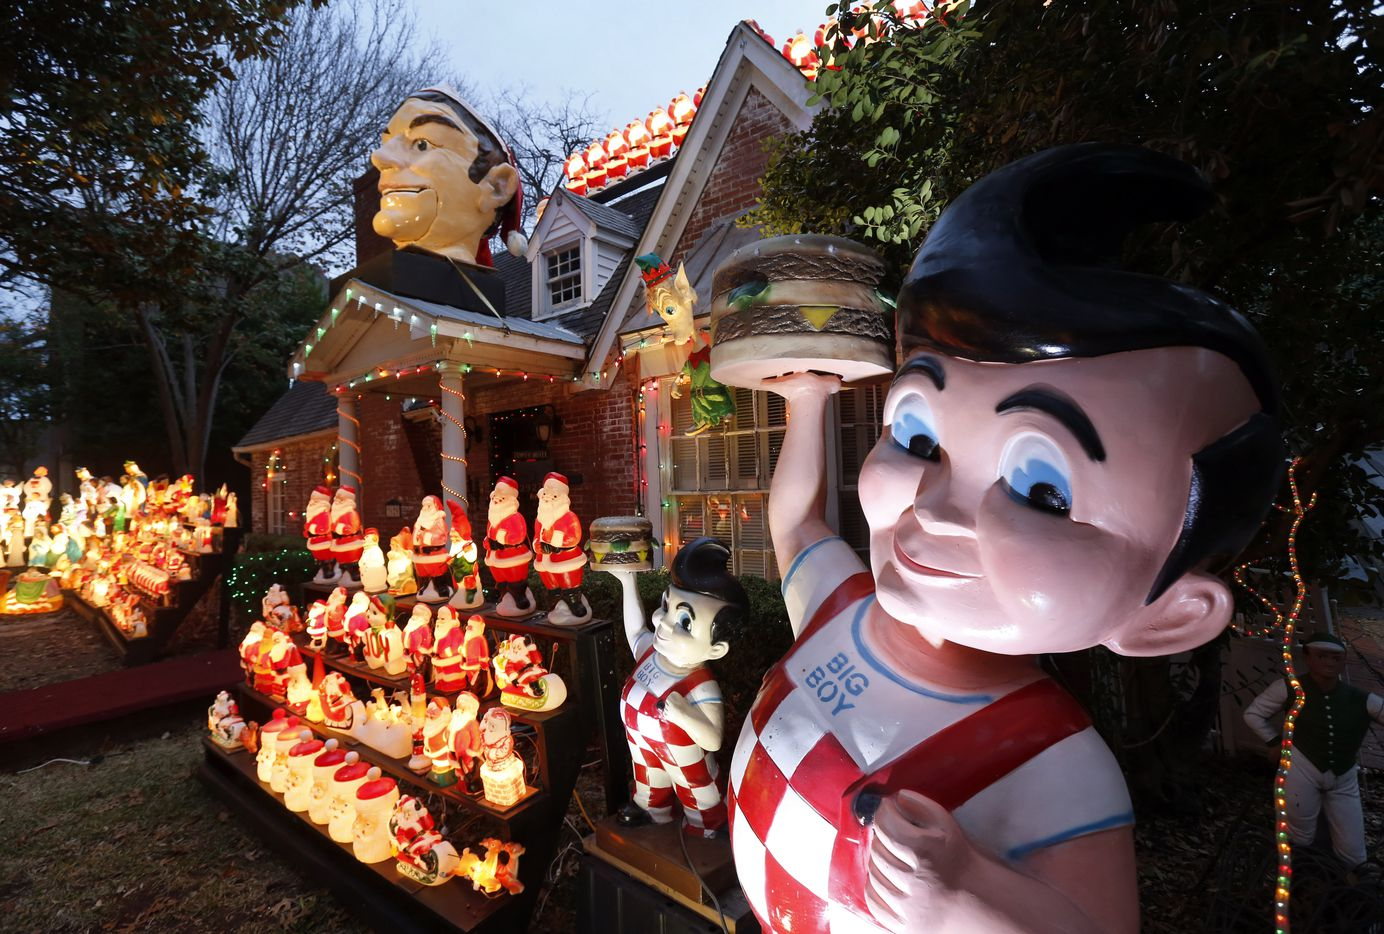 Wayne Smith even has an 8-foot Kip's Big Boy in his decorated University Park yard and house.